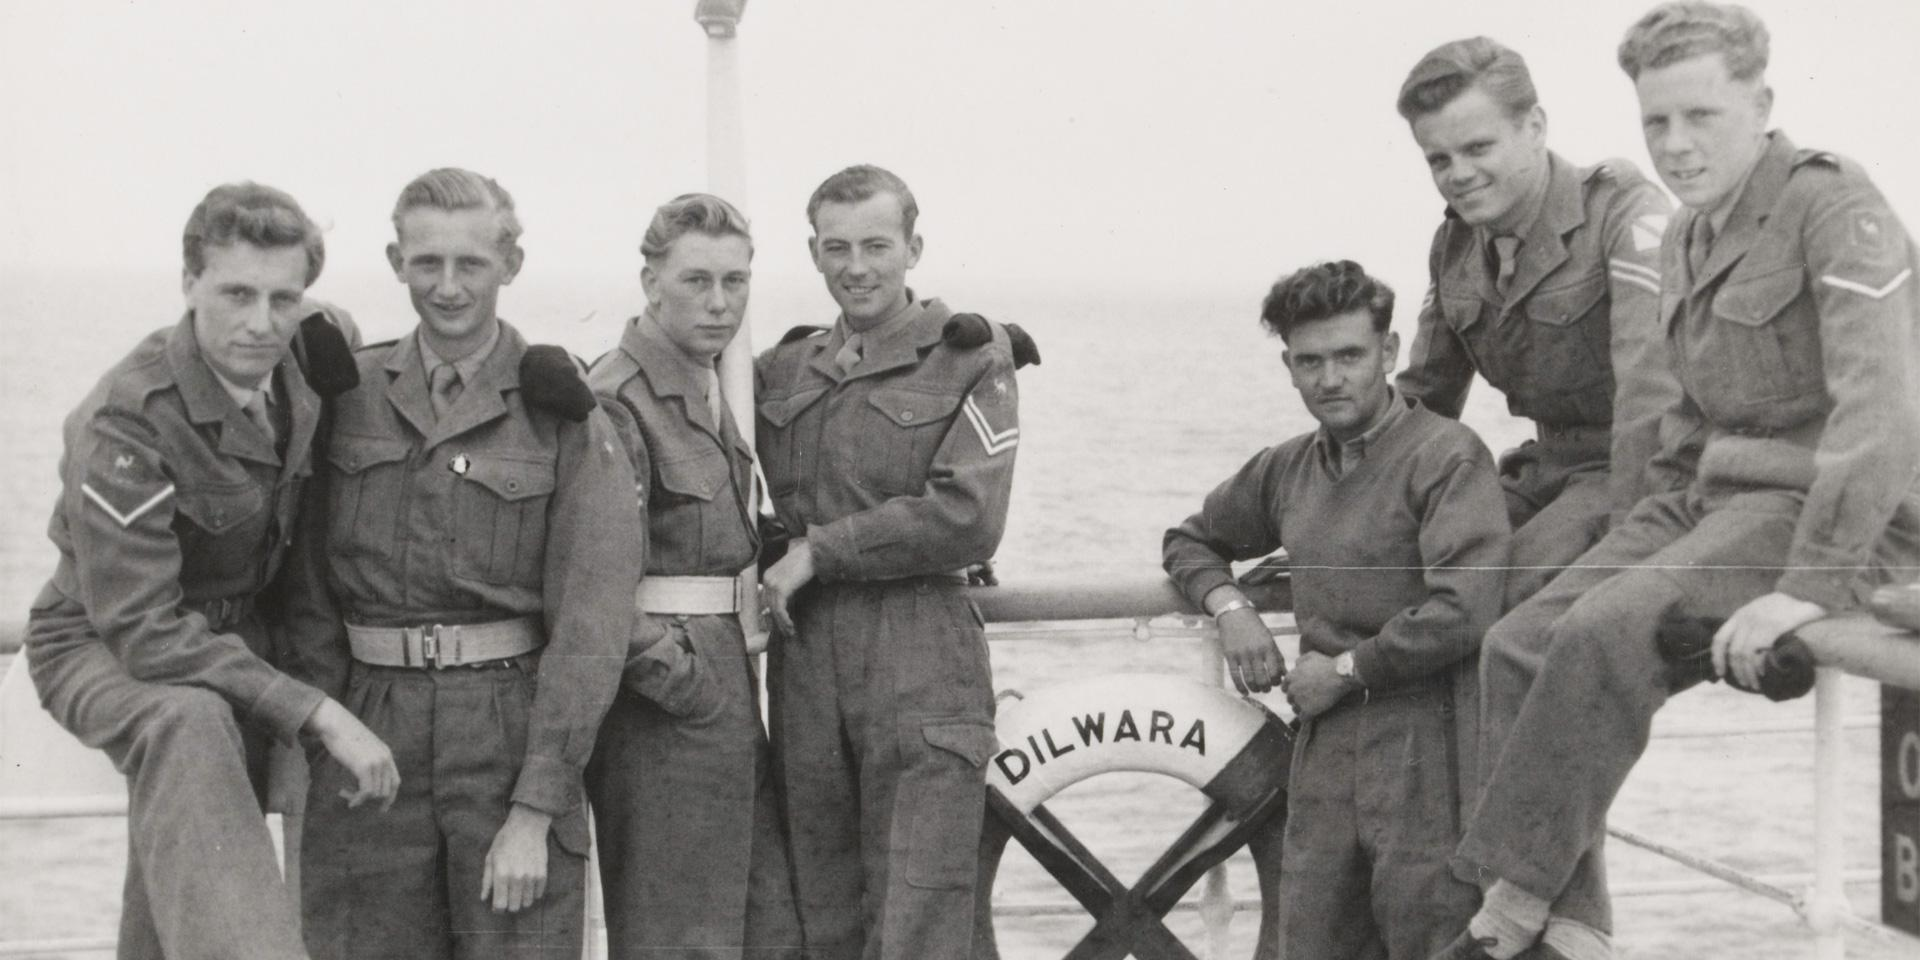 Royal Engineers homeward bound from Suez on the SS 'Dilwara', 1954